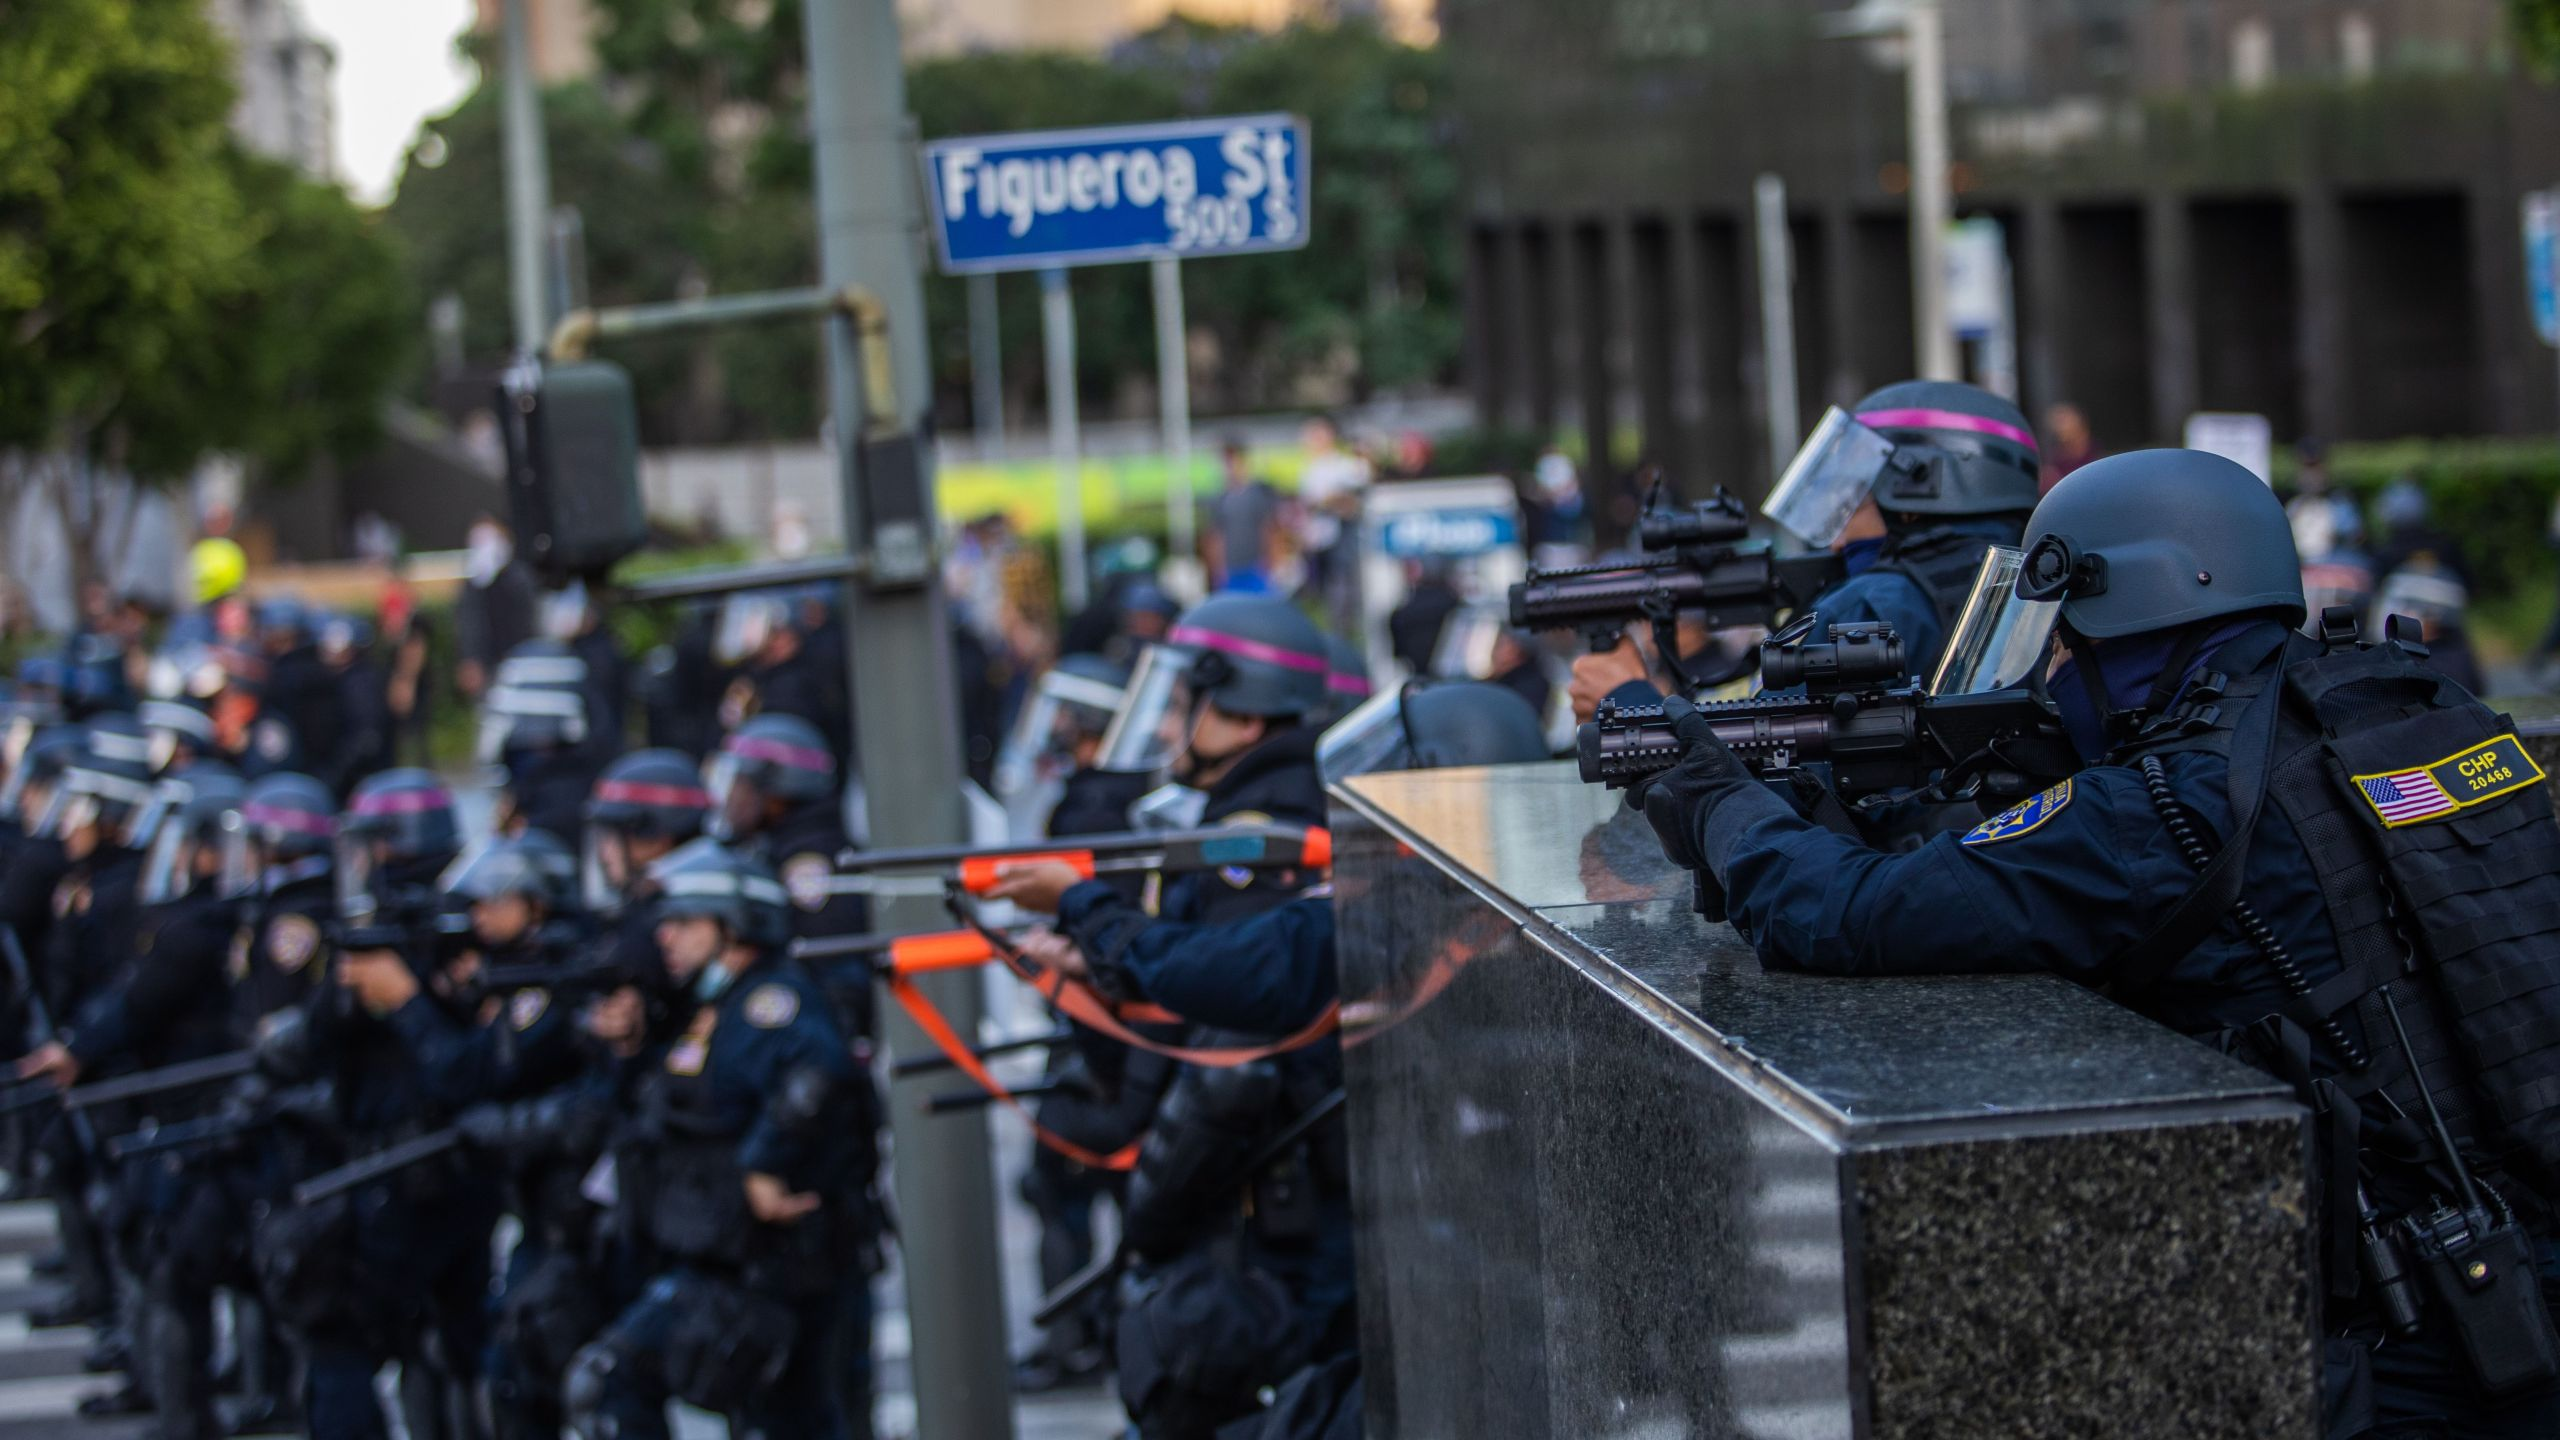 Police stand in a skirmish line while demonstrators after they throw stones in their direction in downtown Los Angeles on May 30, 2020. (APU GOMES/AFP via Getty Images)